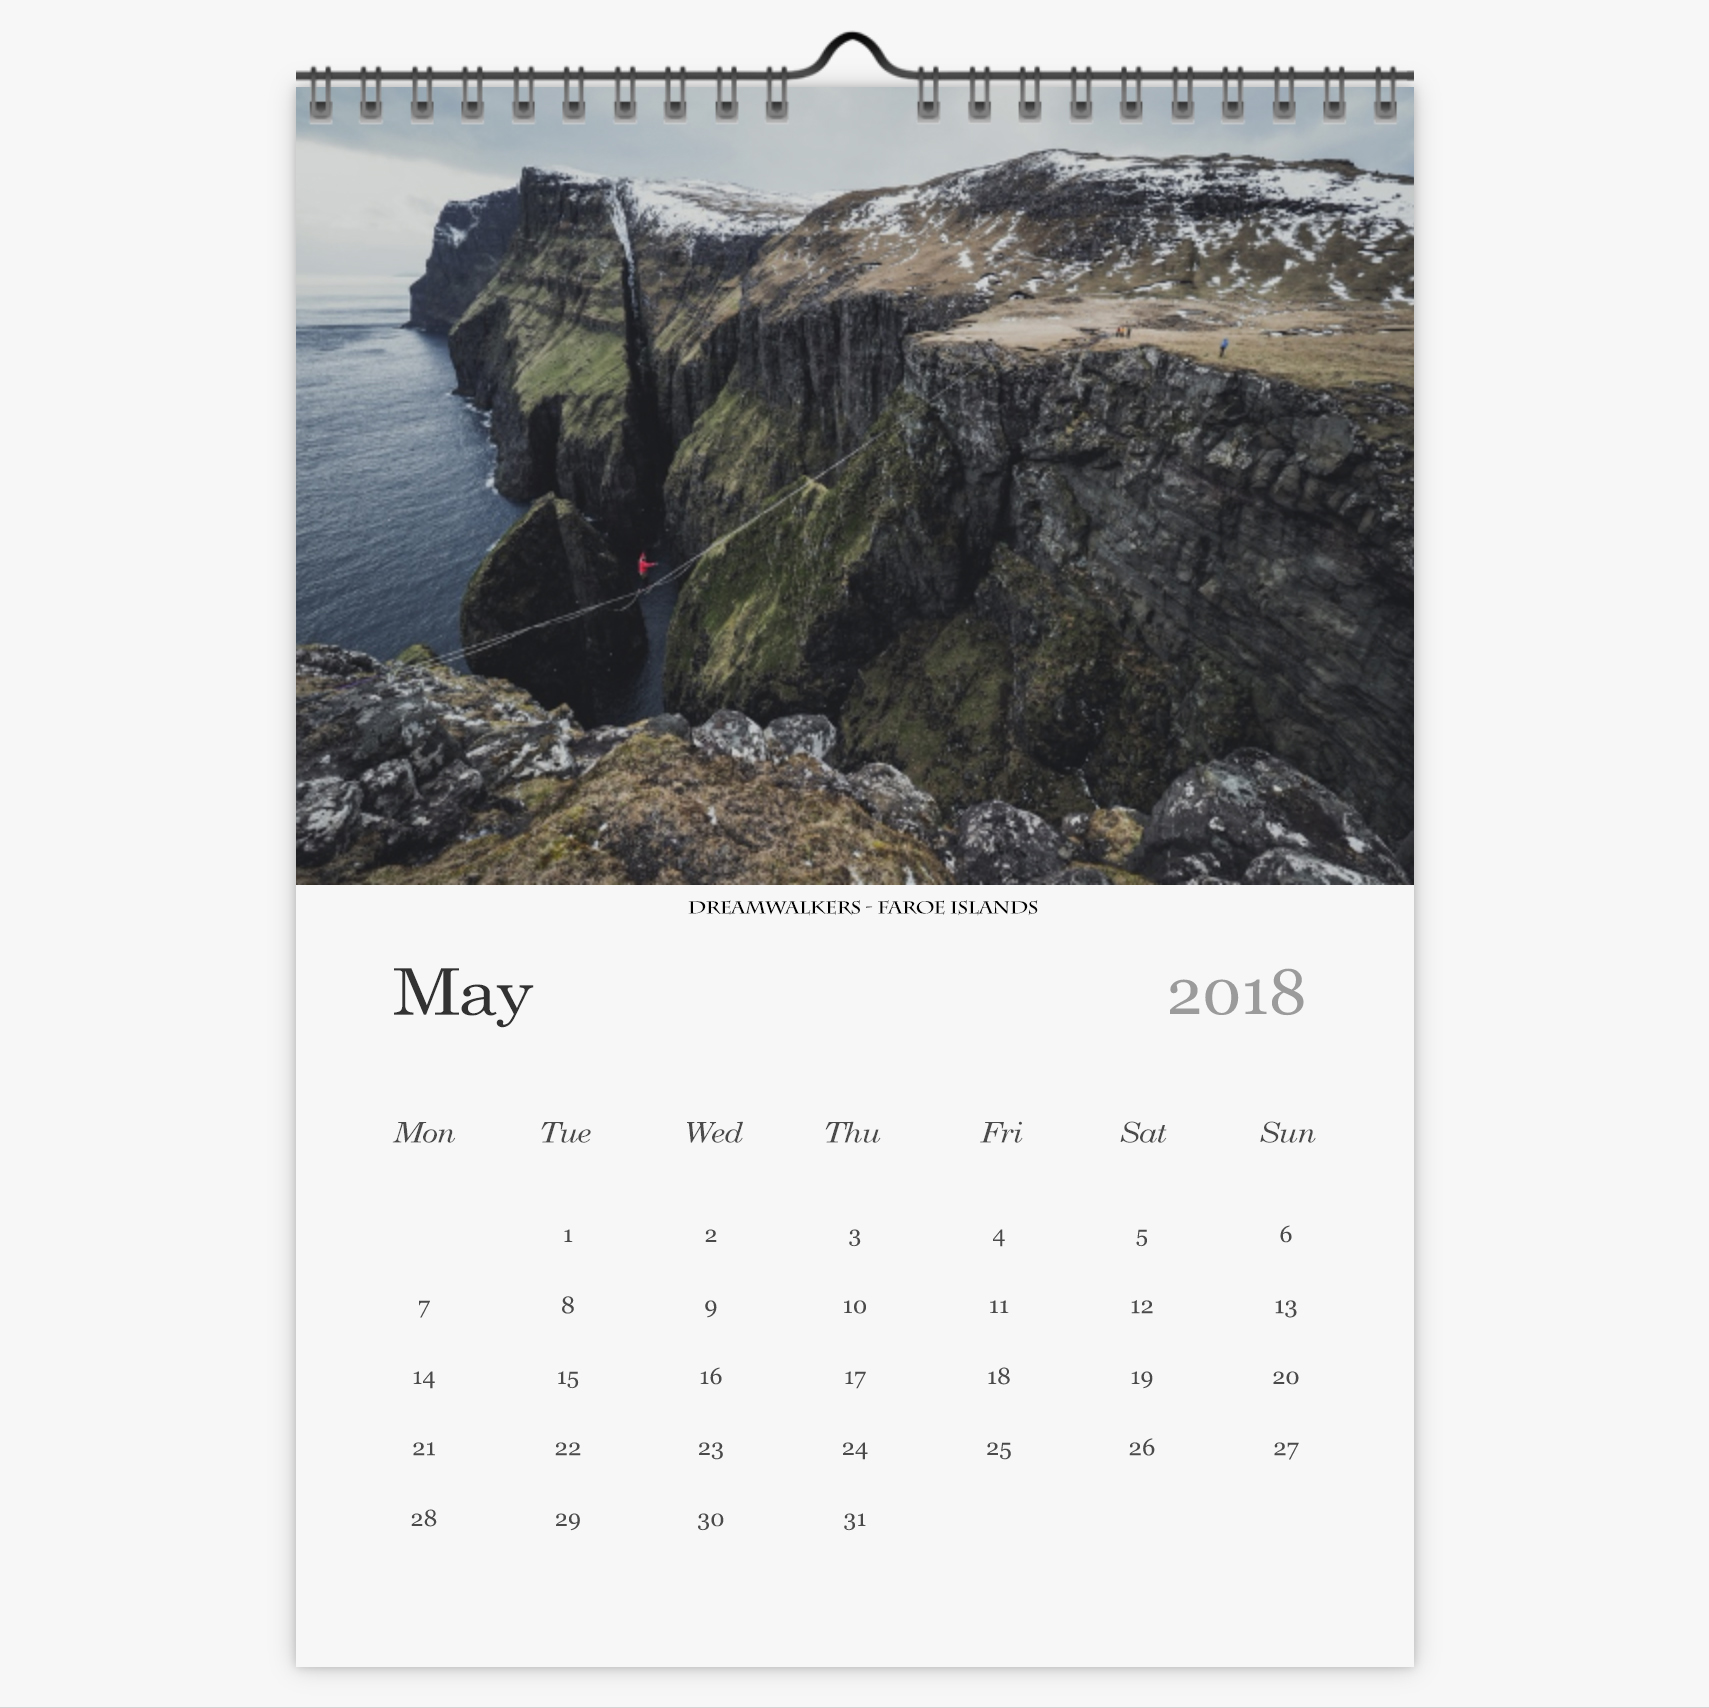 Chris Eyre-Walker Photography 2018 Calendar May